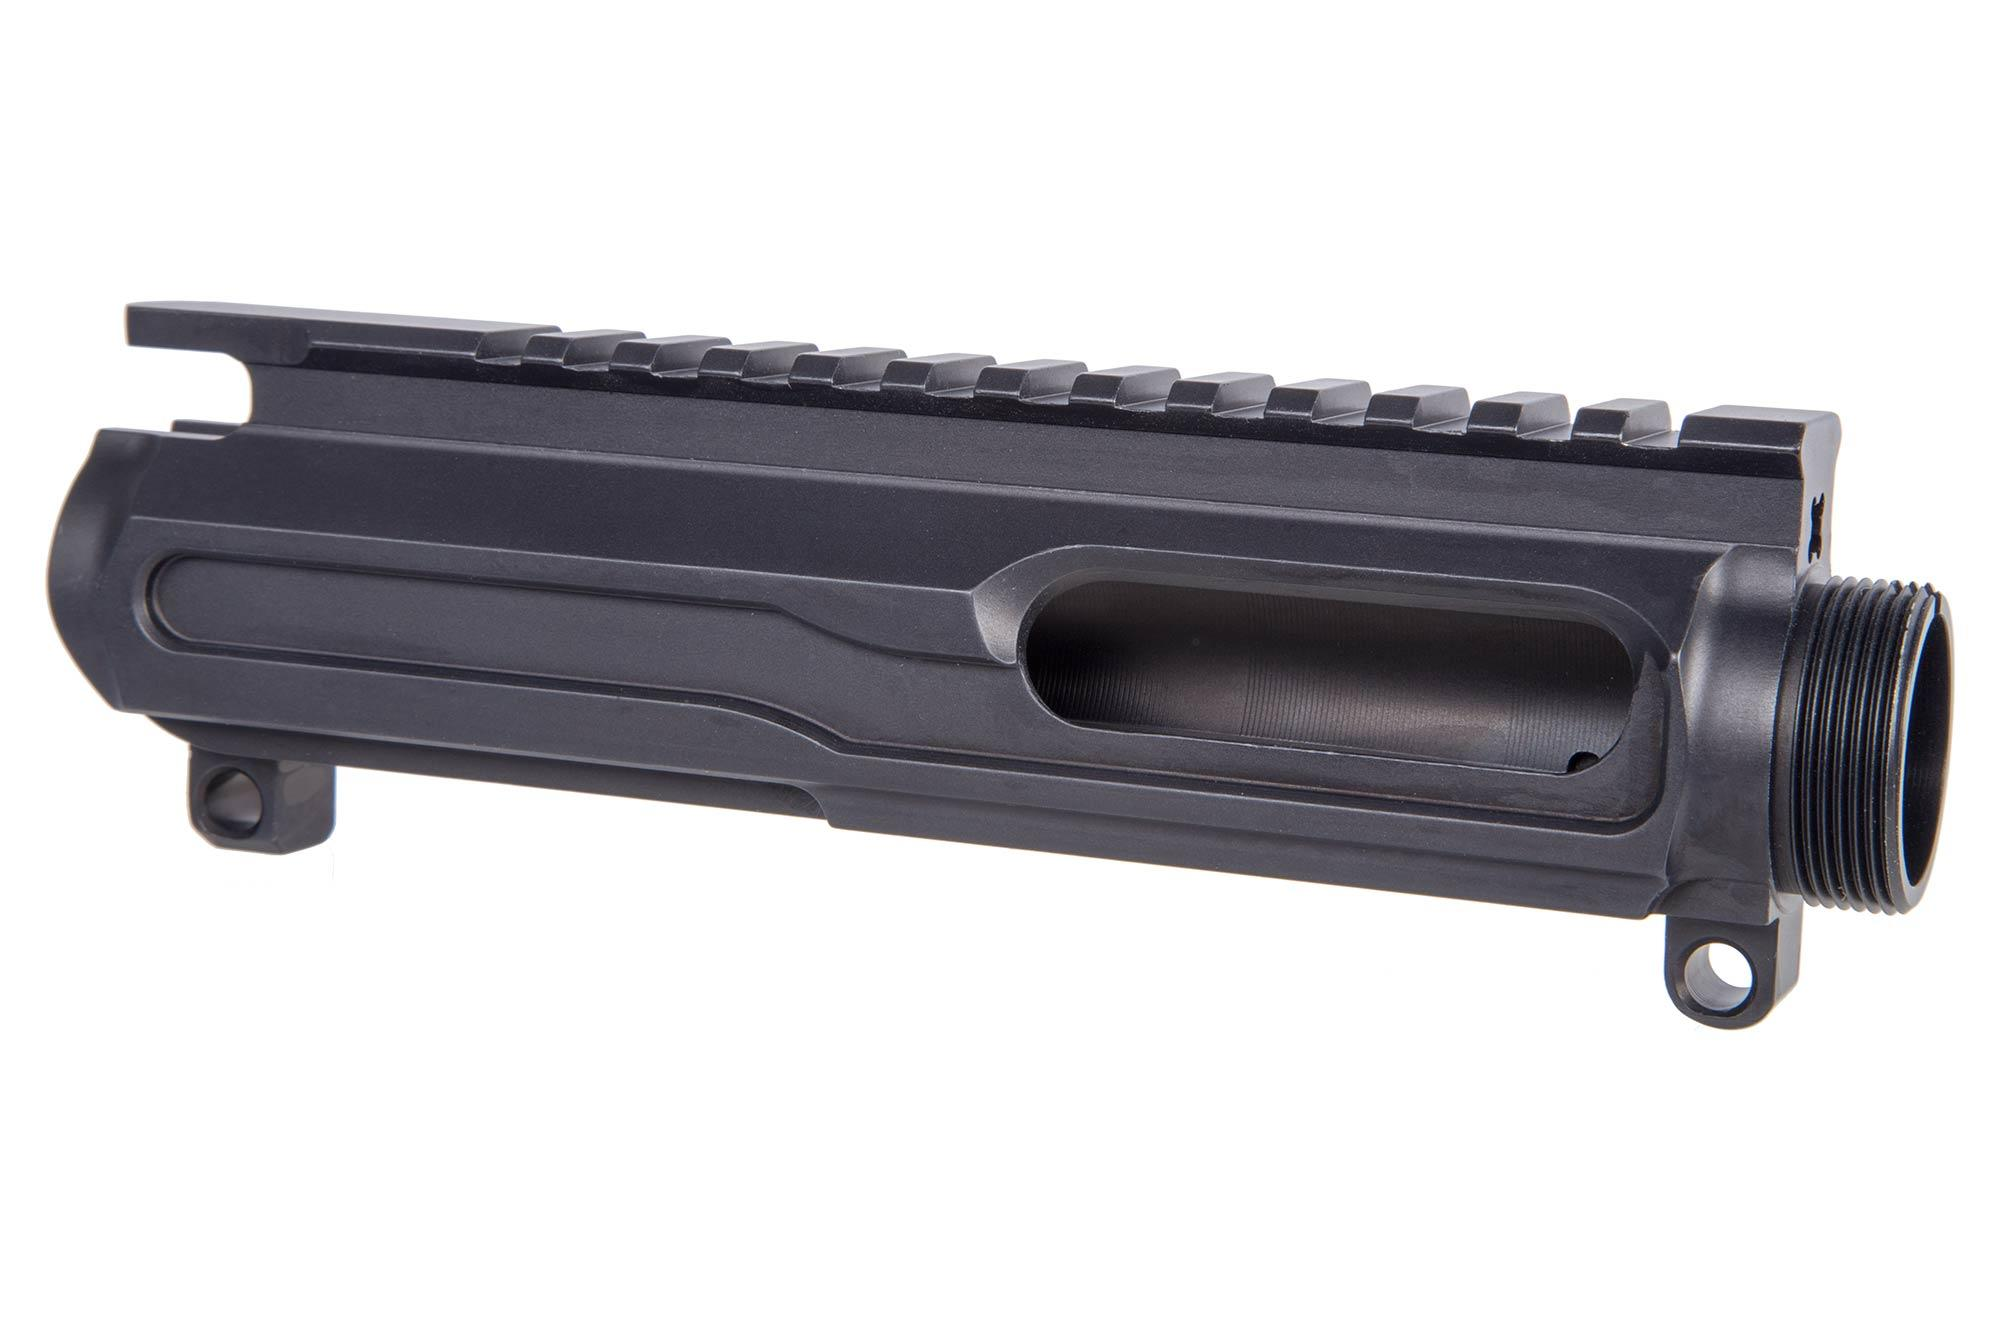 New Frontier Armory C-9 Slick Side 9mm Upper Receiver - BHO Included